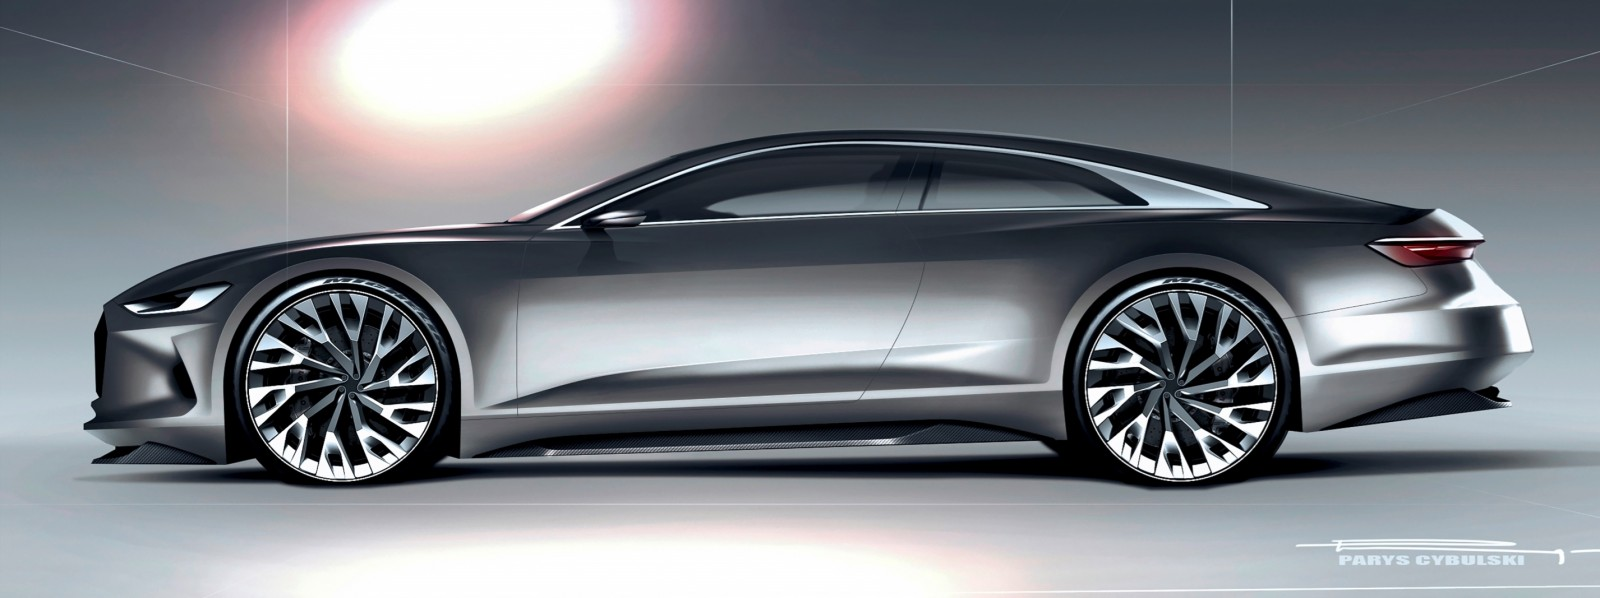 2014 Audi Prologue is Worst of LA 2014 2